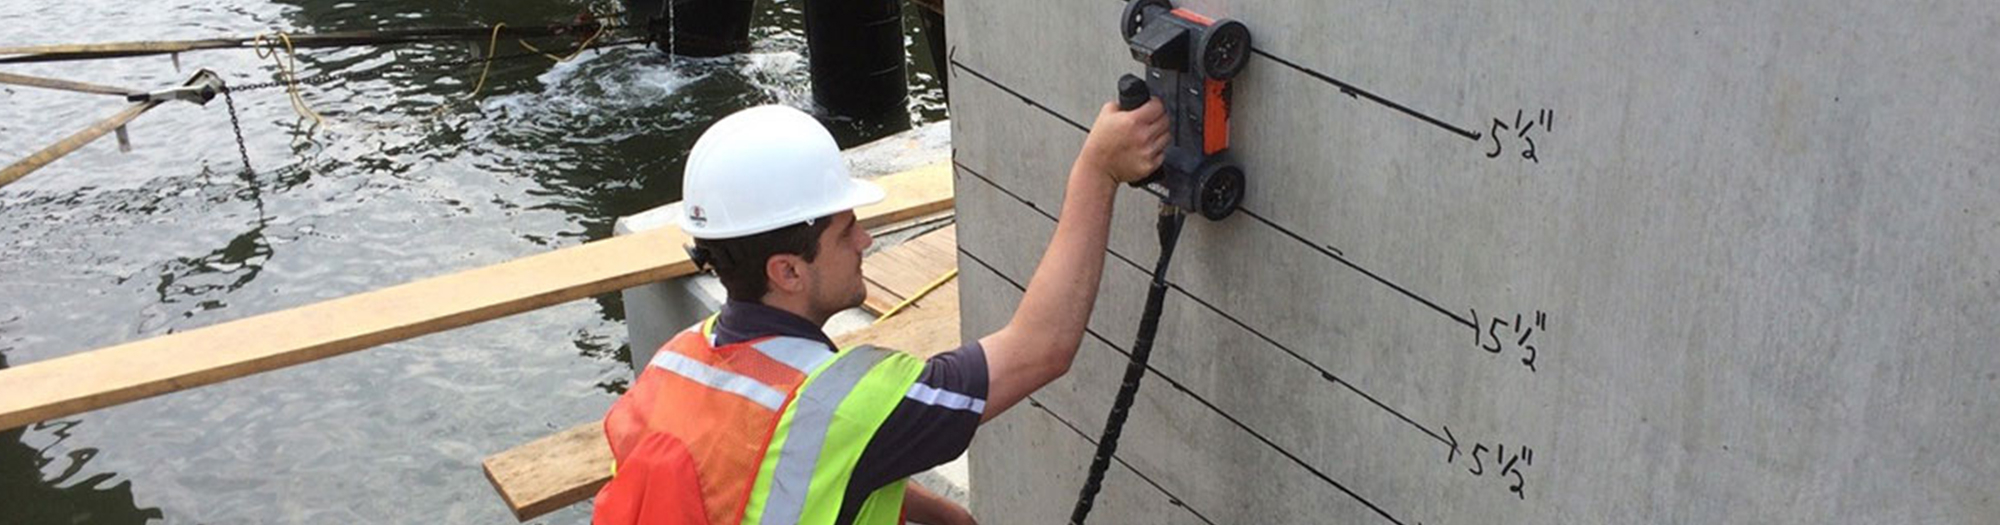 Concrete Scanning And Imaging Services - Locate Rebar & Post